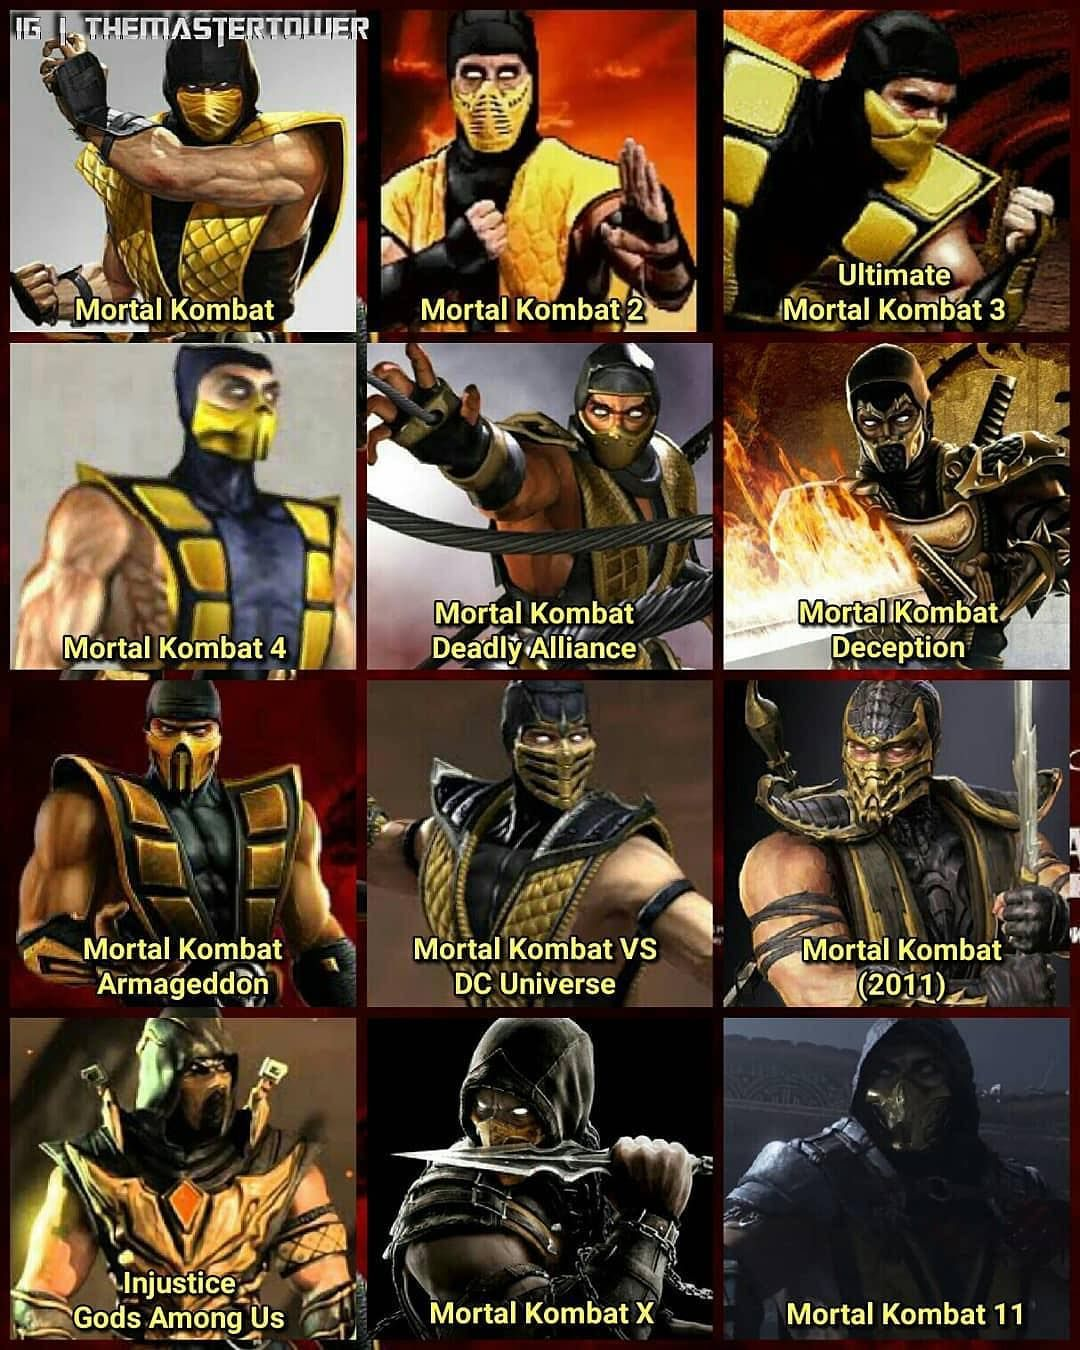 Finalround On Instagram Which Scorpion Costume Is Your Favorite Comment Down Below The Cost Scorpion Mortal Kombat Mortal Kombat Memes Mortal Kombat Art